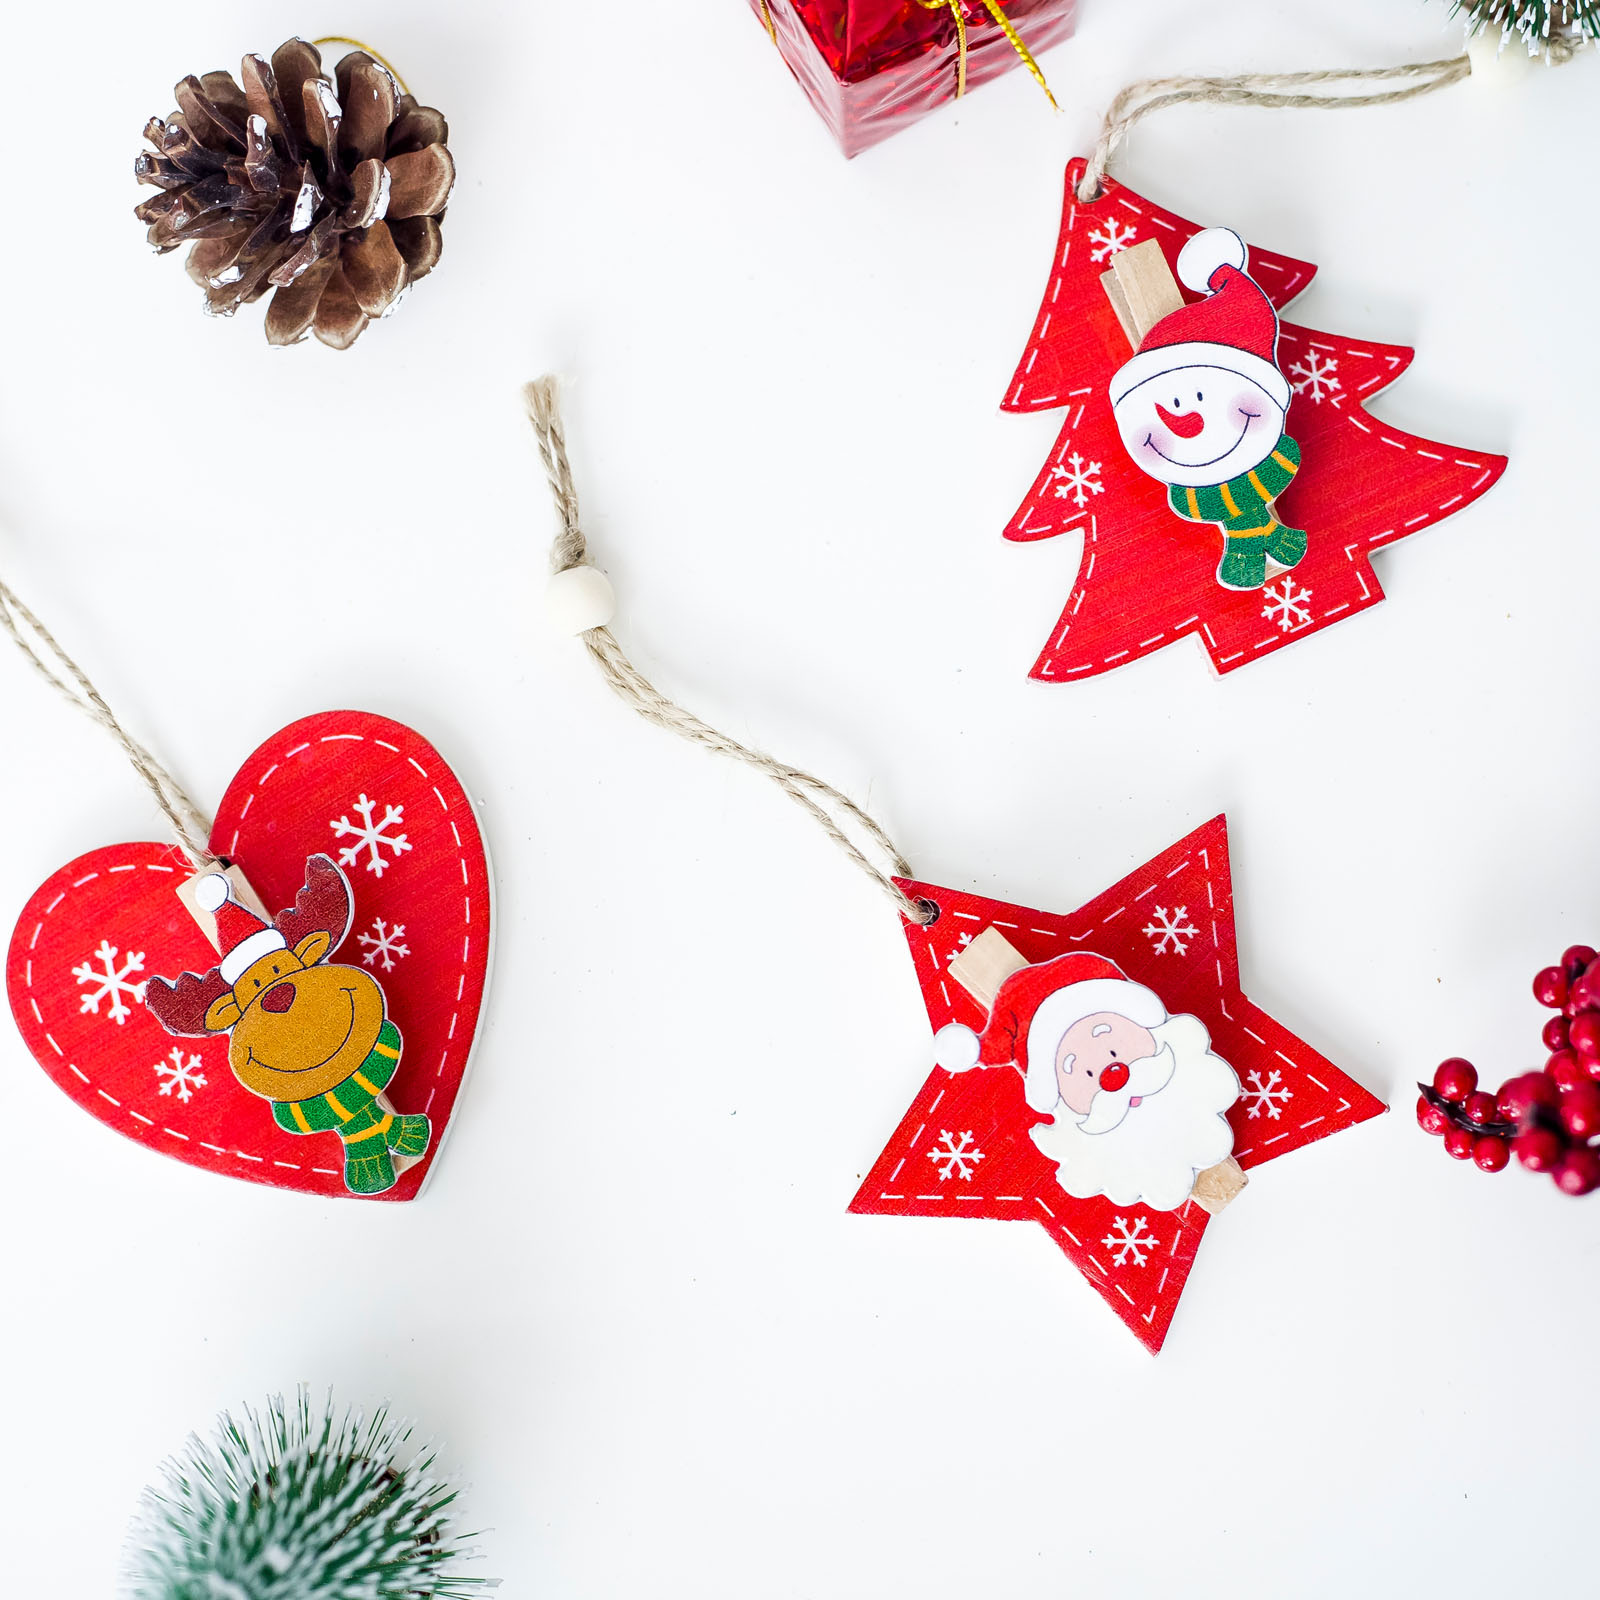 Hanging Christmas Decorations.Us 0 73 28 Off 2019 New Year Wooden Christmas Tree Ornaments Pendant Hanging Xmas Kids Gifts 2018 Merry Christmas Decorations For Home Decor In